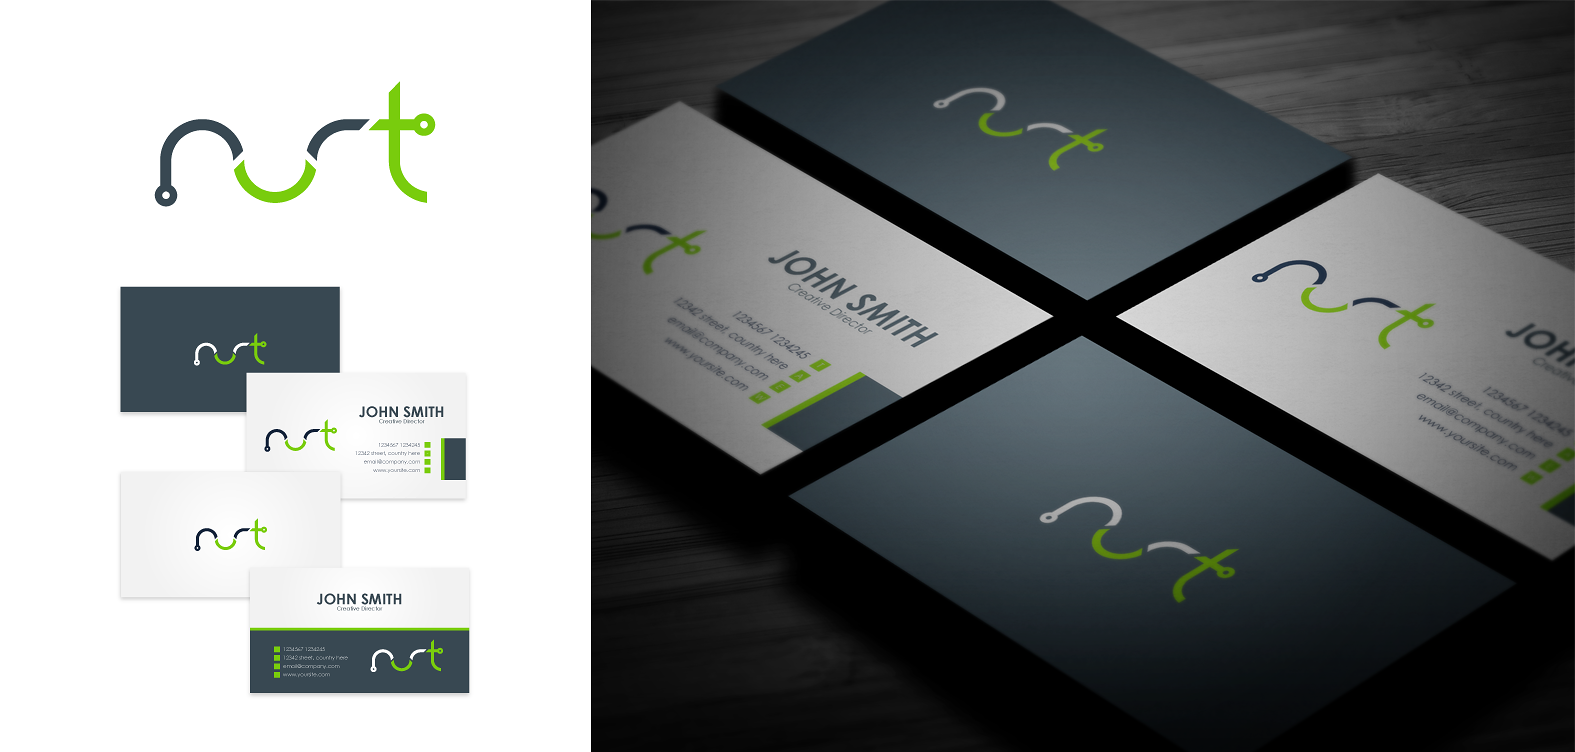 logo and business card for Nurt